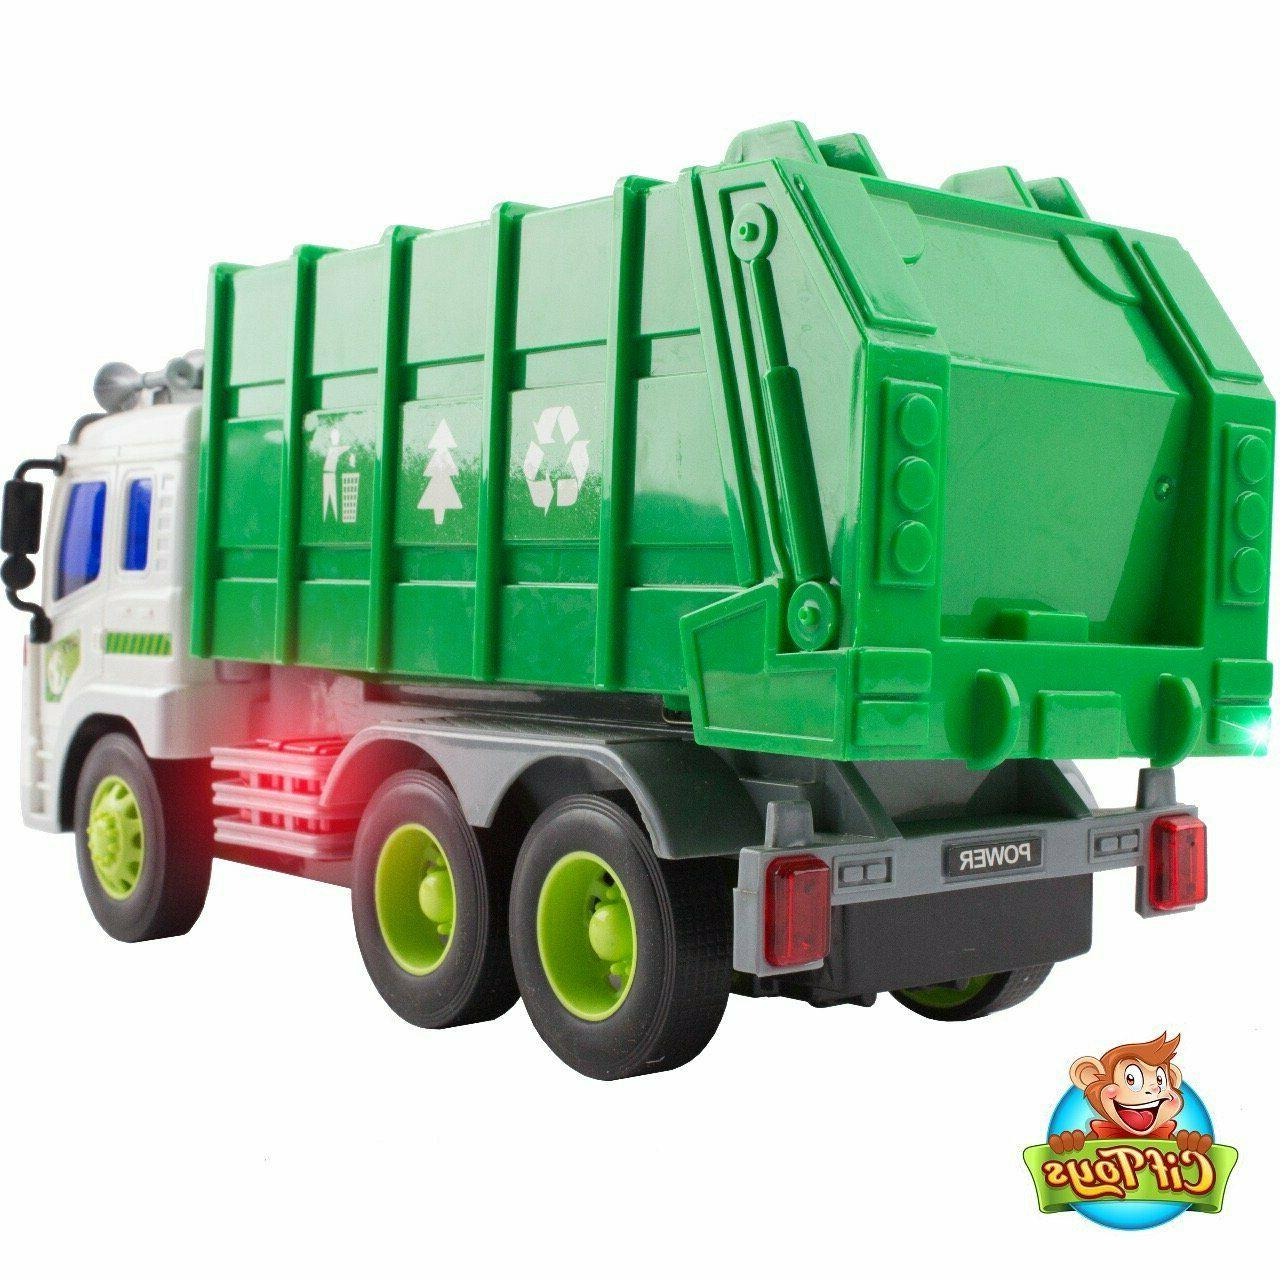 Toys For Boys Kids Children Garbage Cans 5+